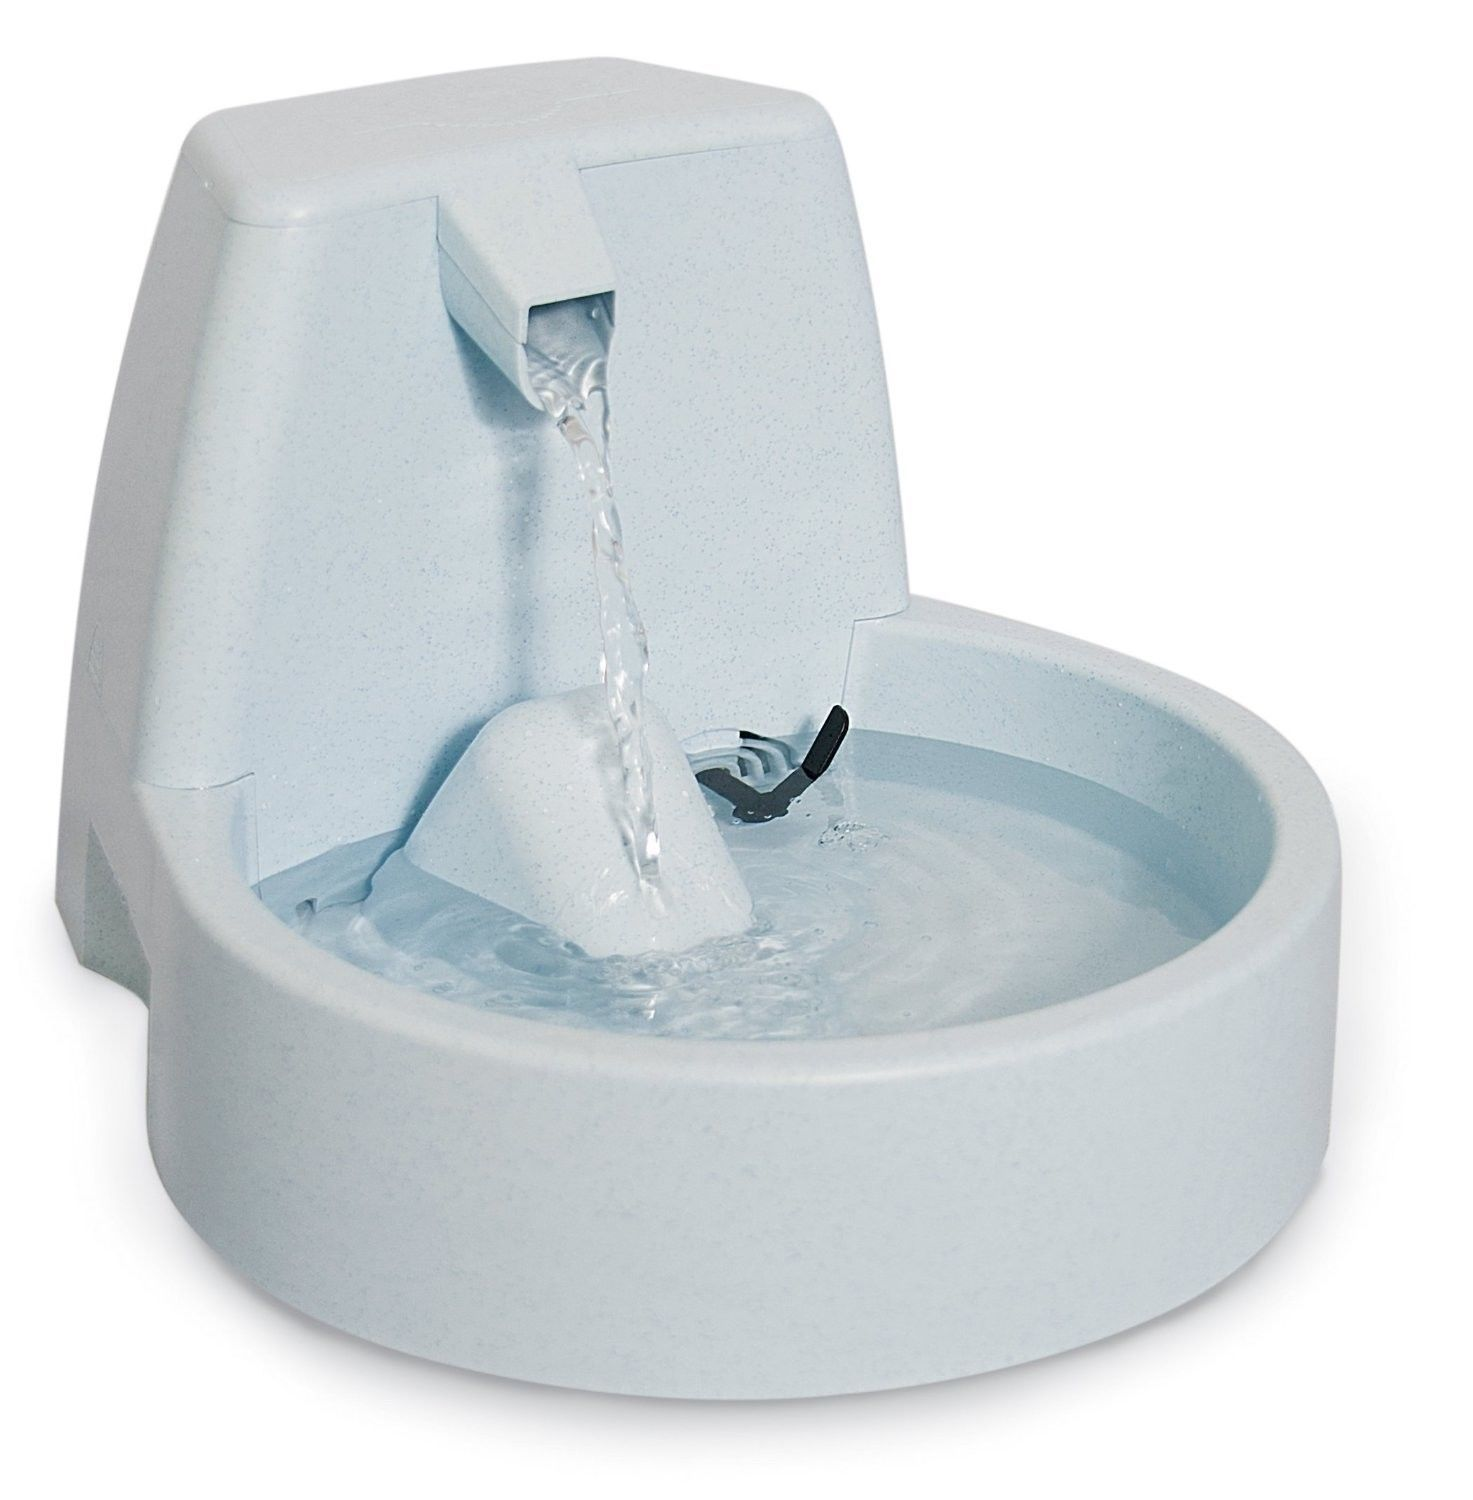 Drinkwell Pet Fountain Dog Refresh Dish Free Falling Stream Safe Bowl Puppy NEW